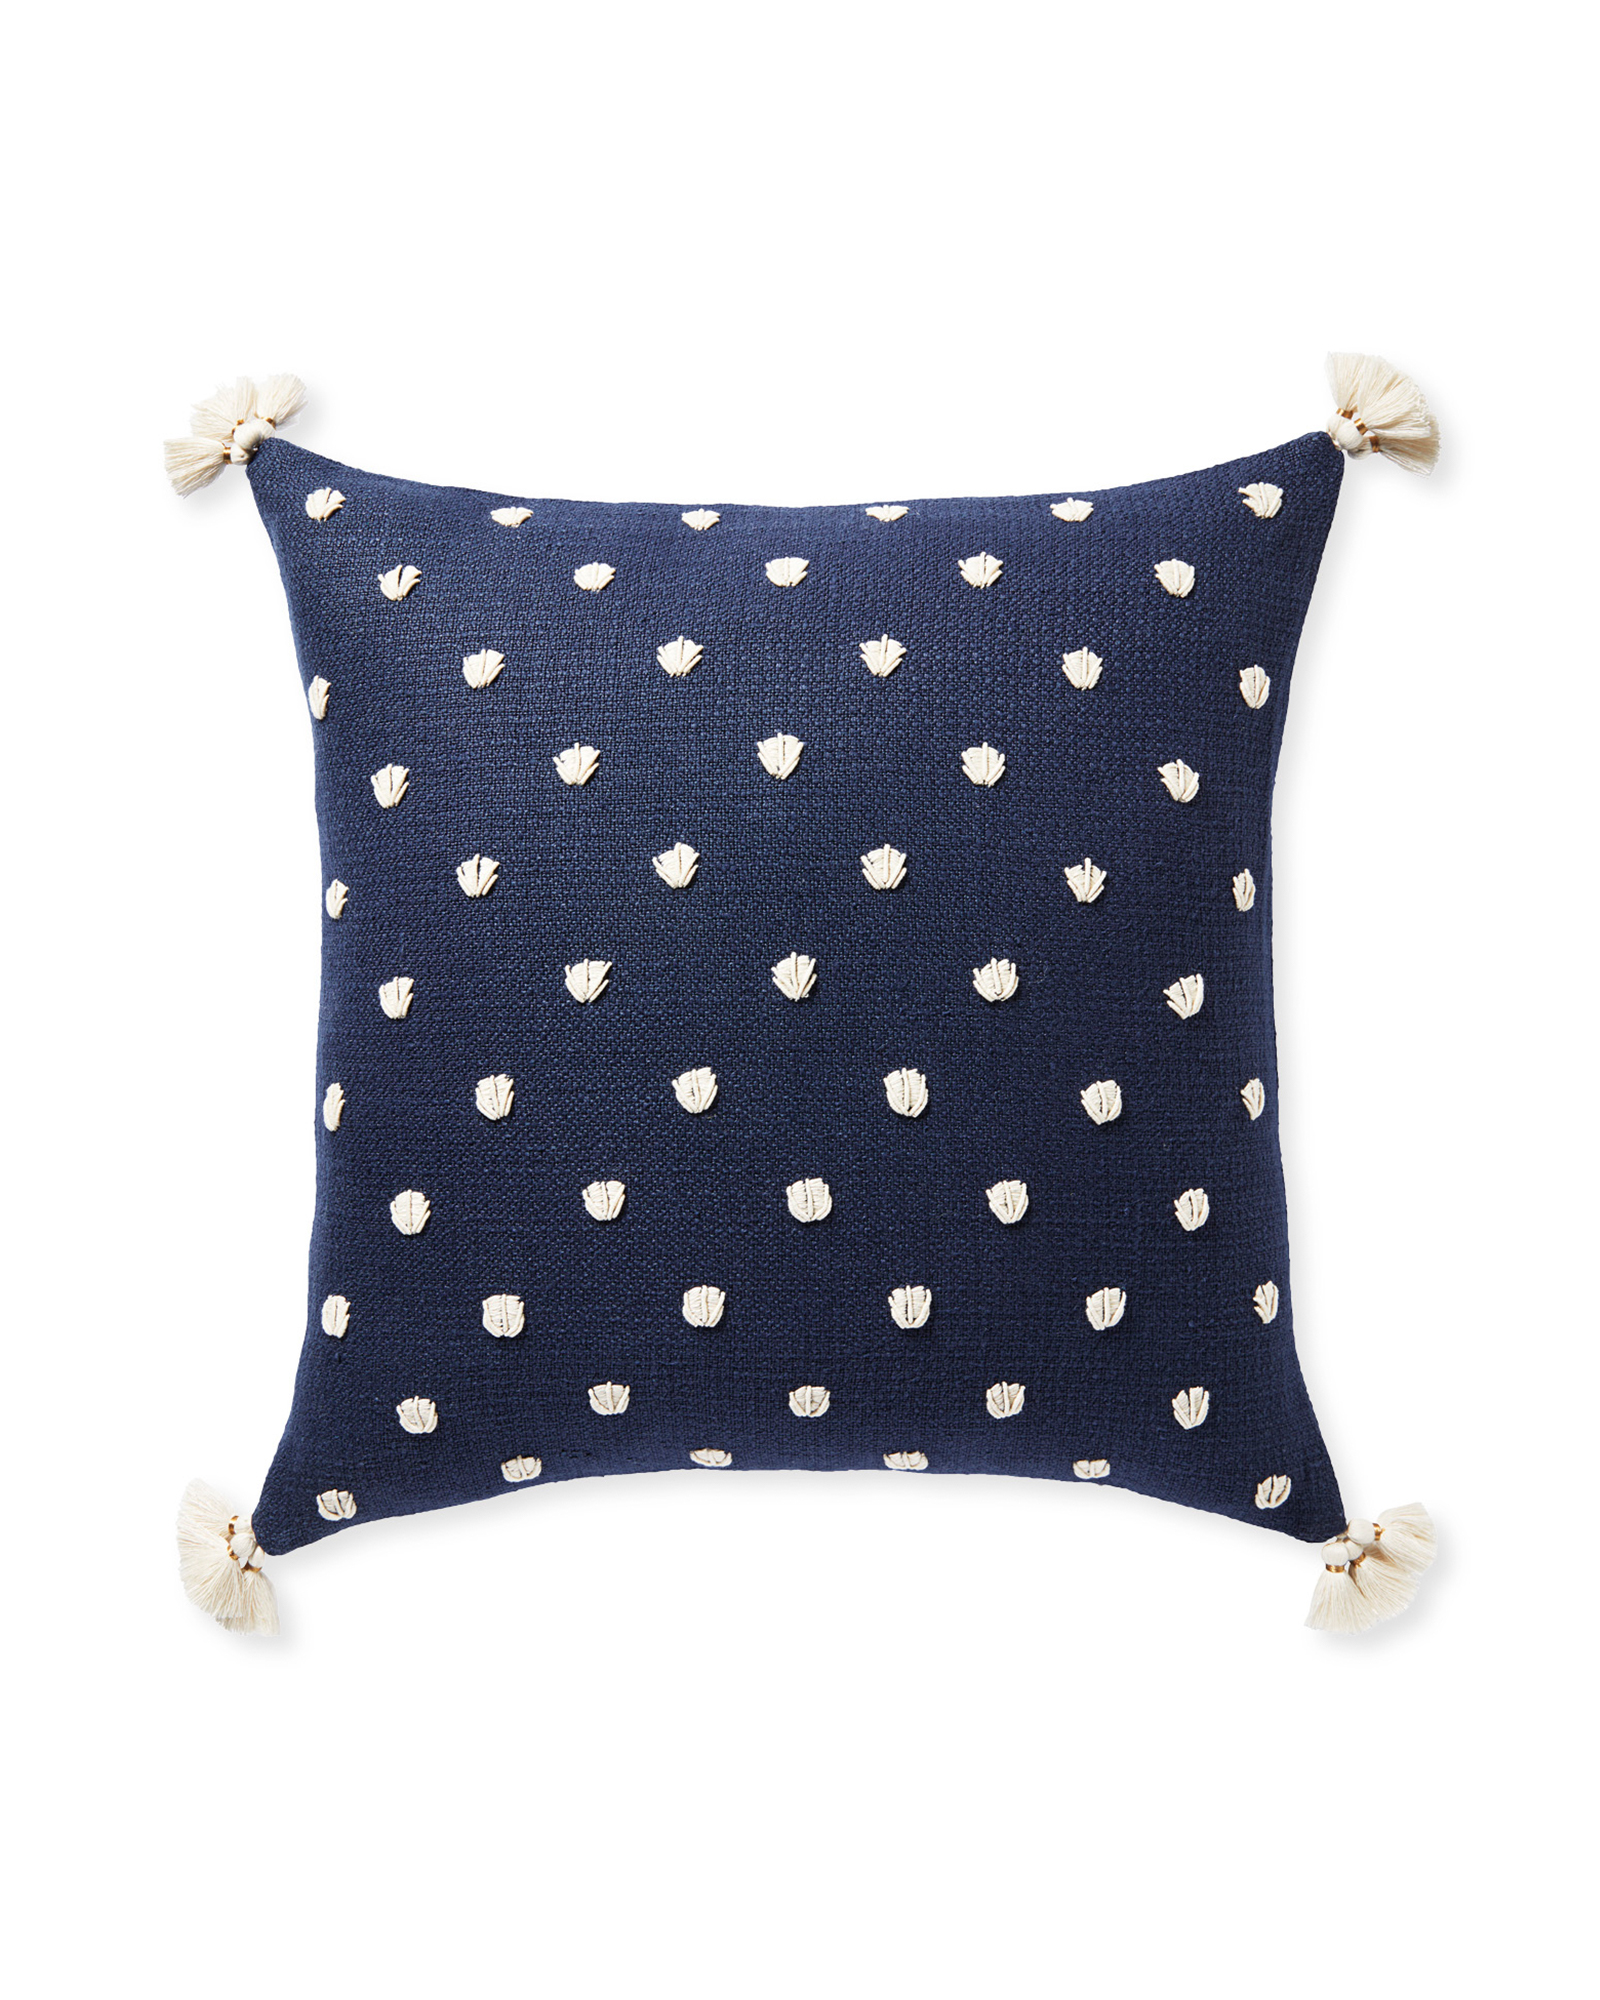 East Beach Pillow Cover, Navy